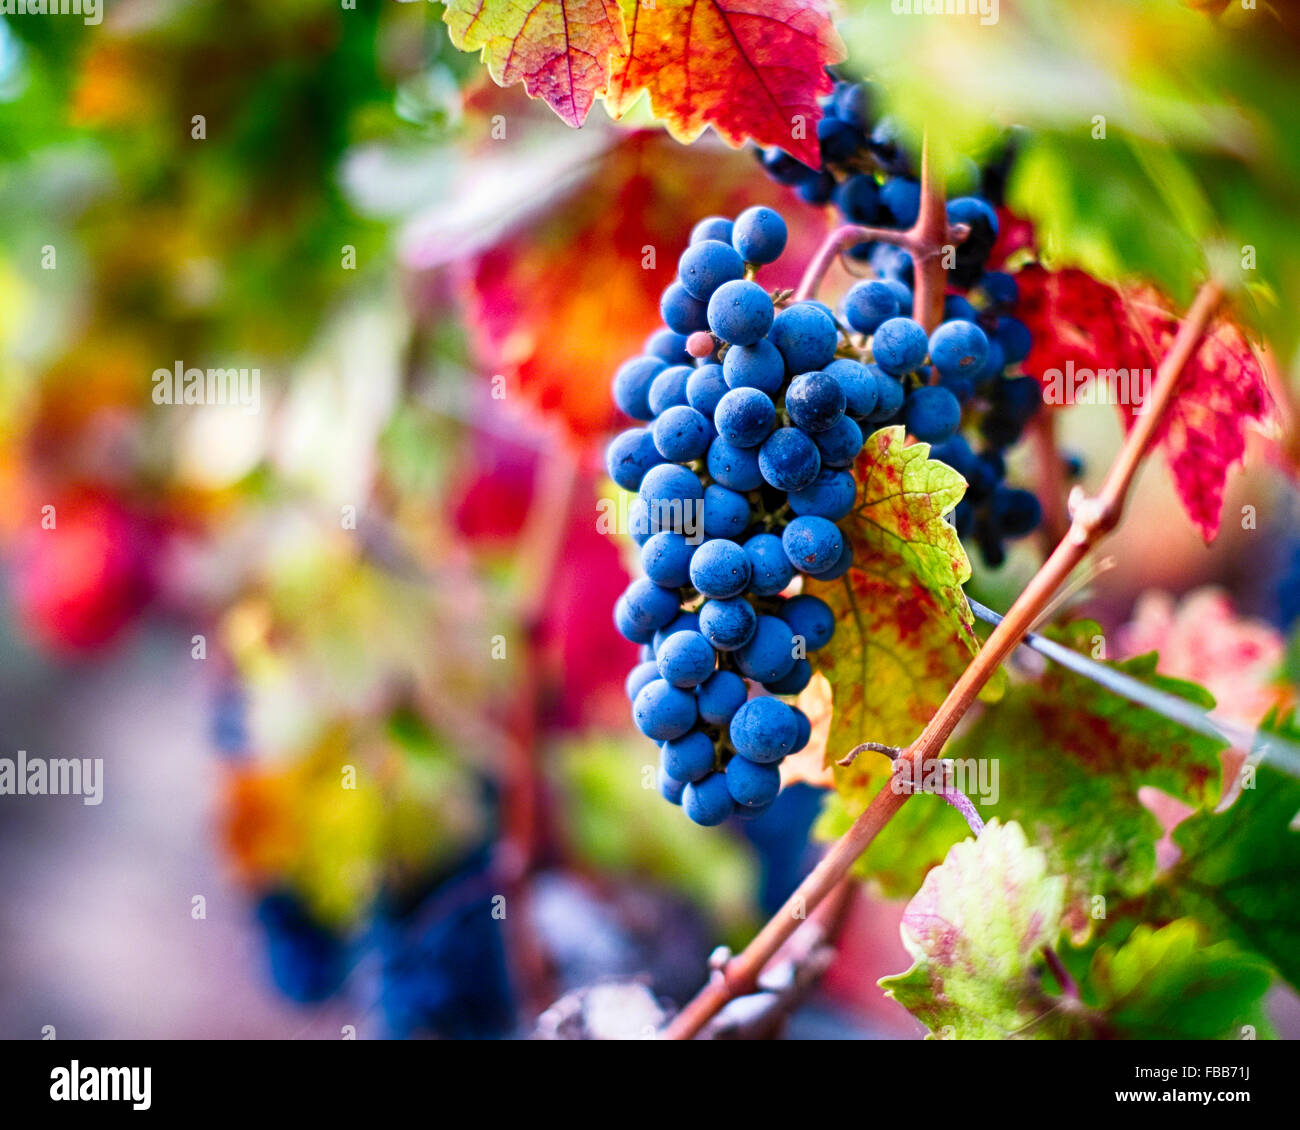 View of a Bunch of Ripe Blue Grapes on the Vine, Oakville, Napa Valley, California - Stock Image